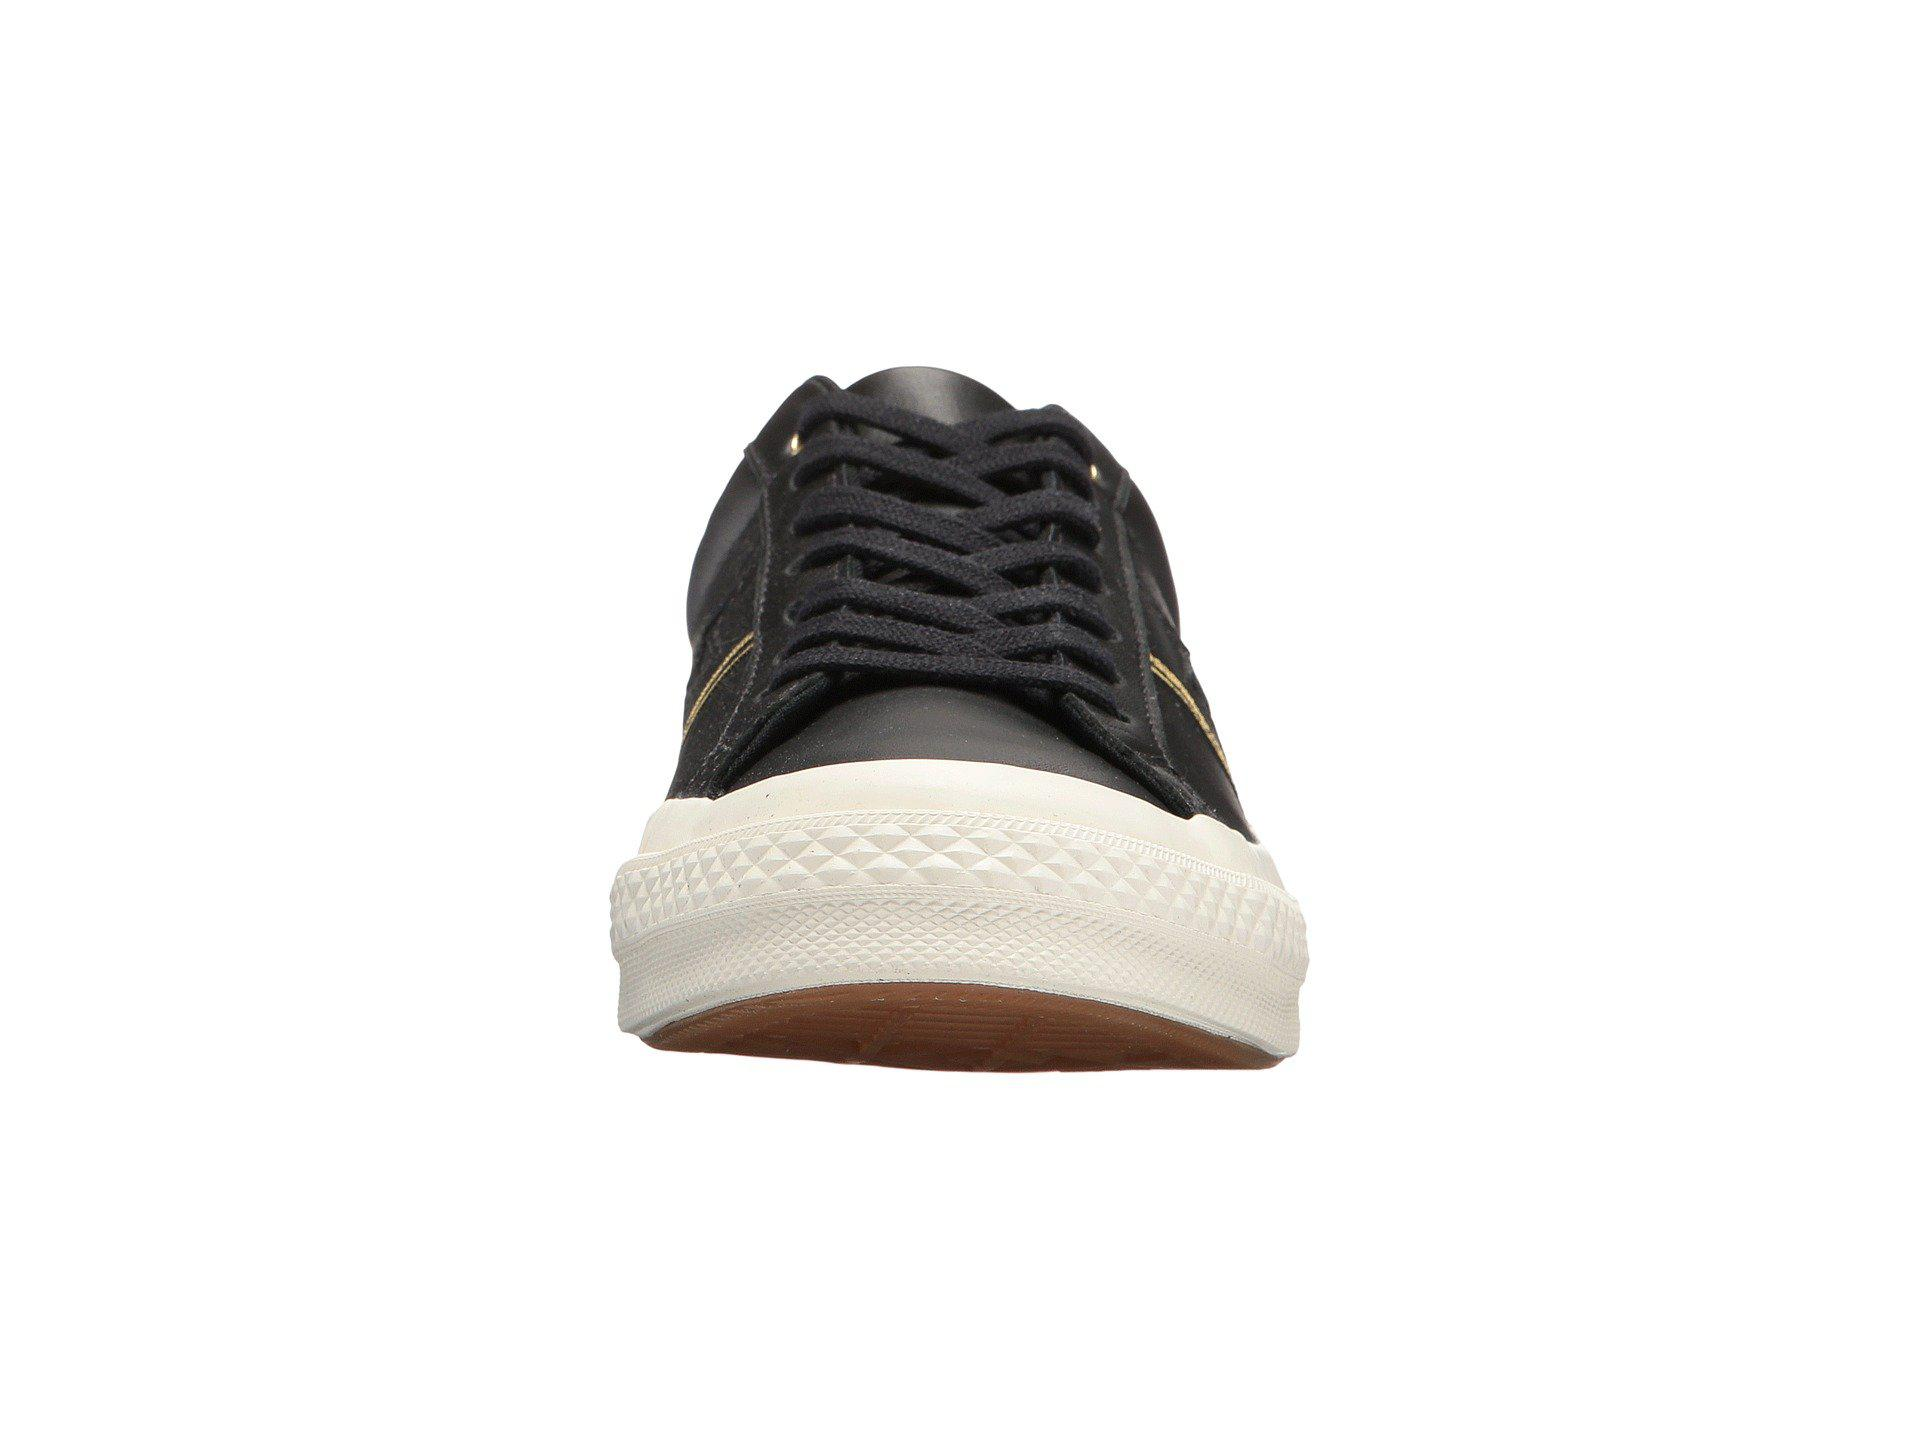 4c3596b15229 Lyst - Converse One Star(r) Piping Pack Ox (black gold egret ...